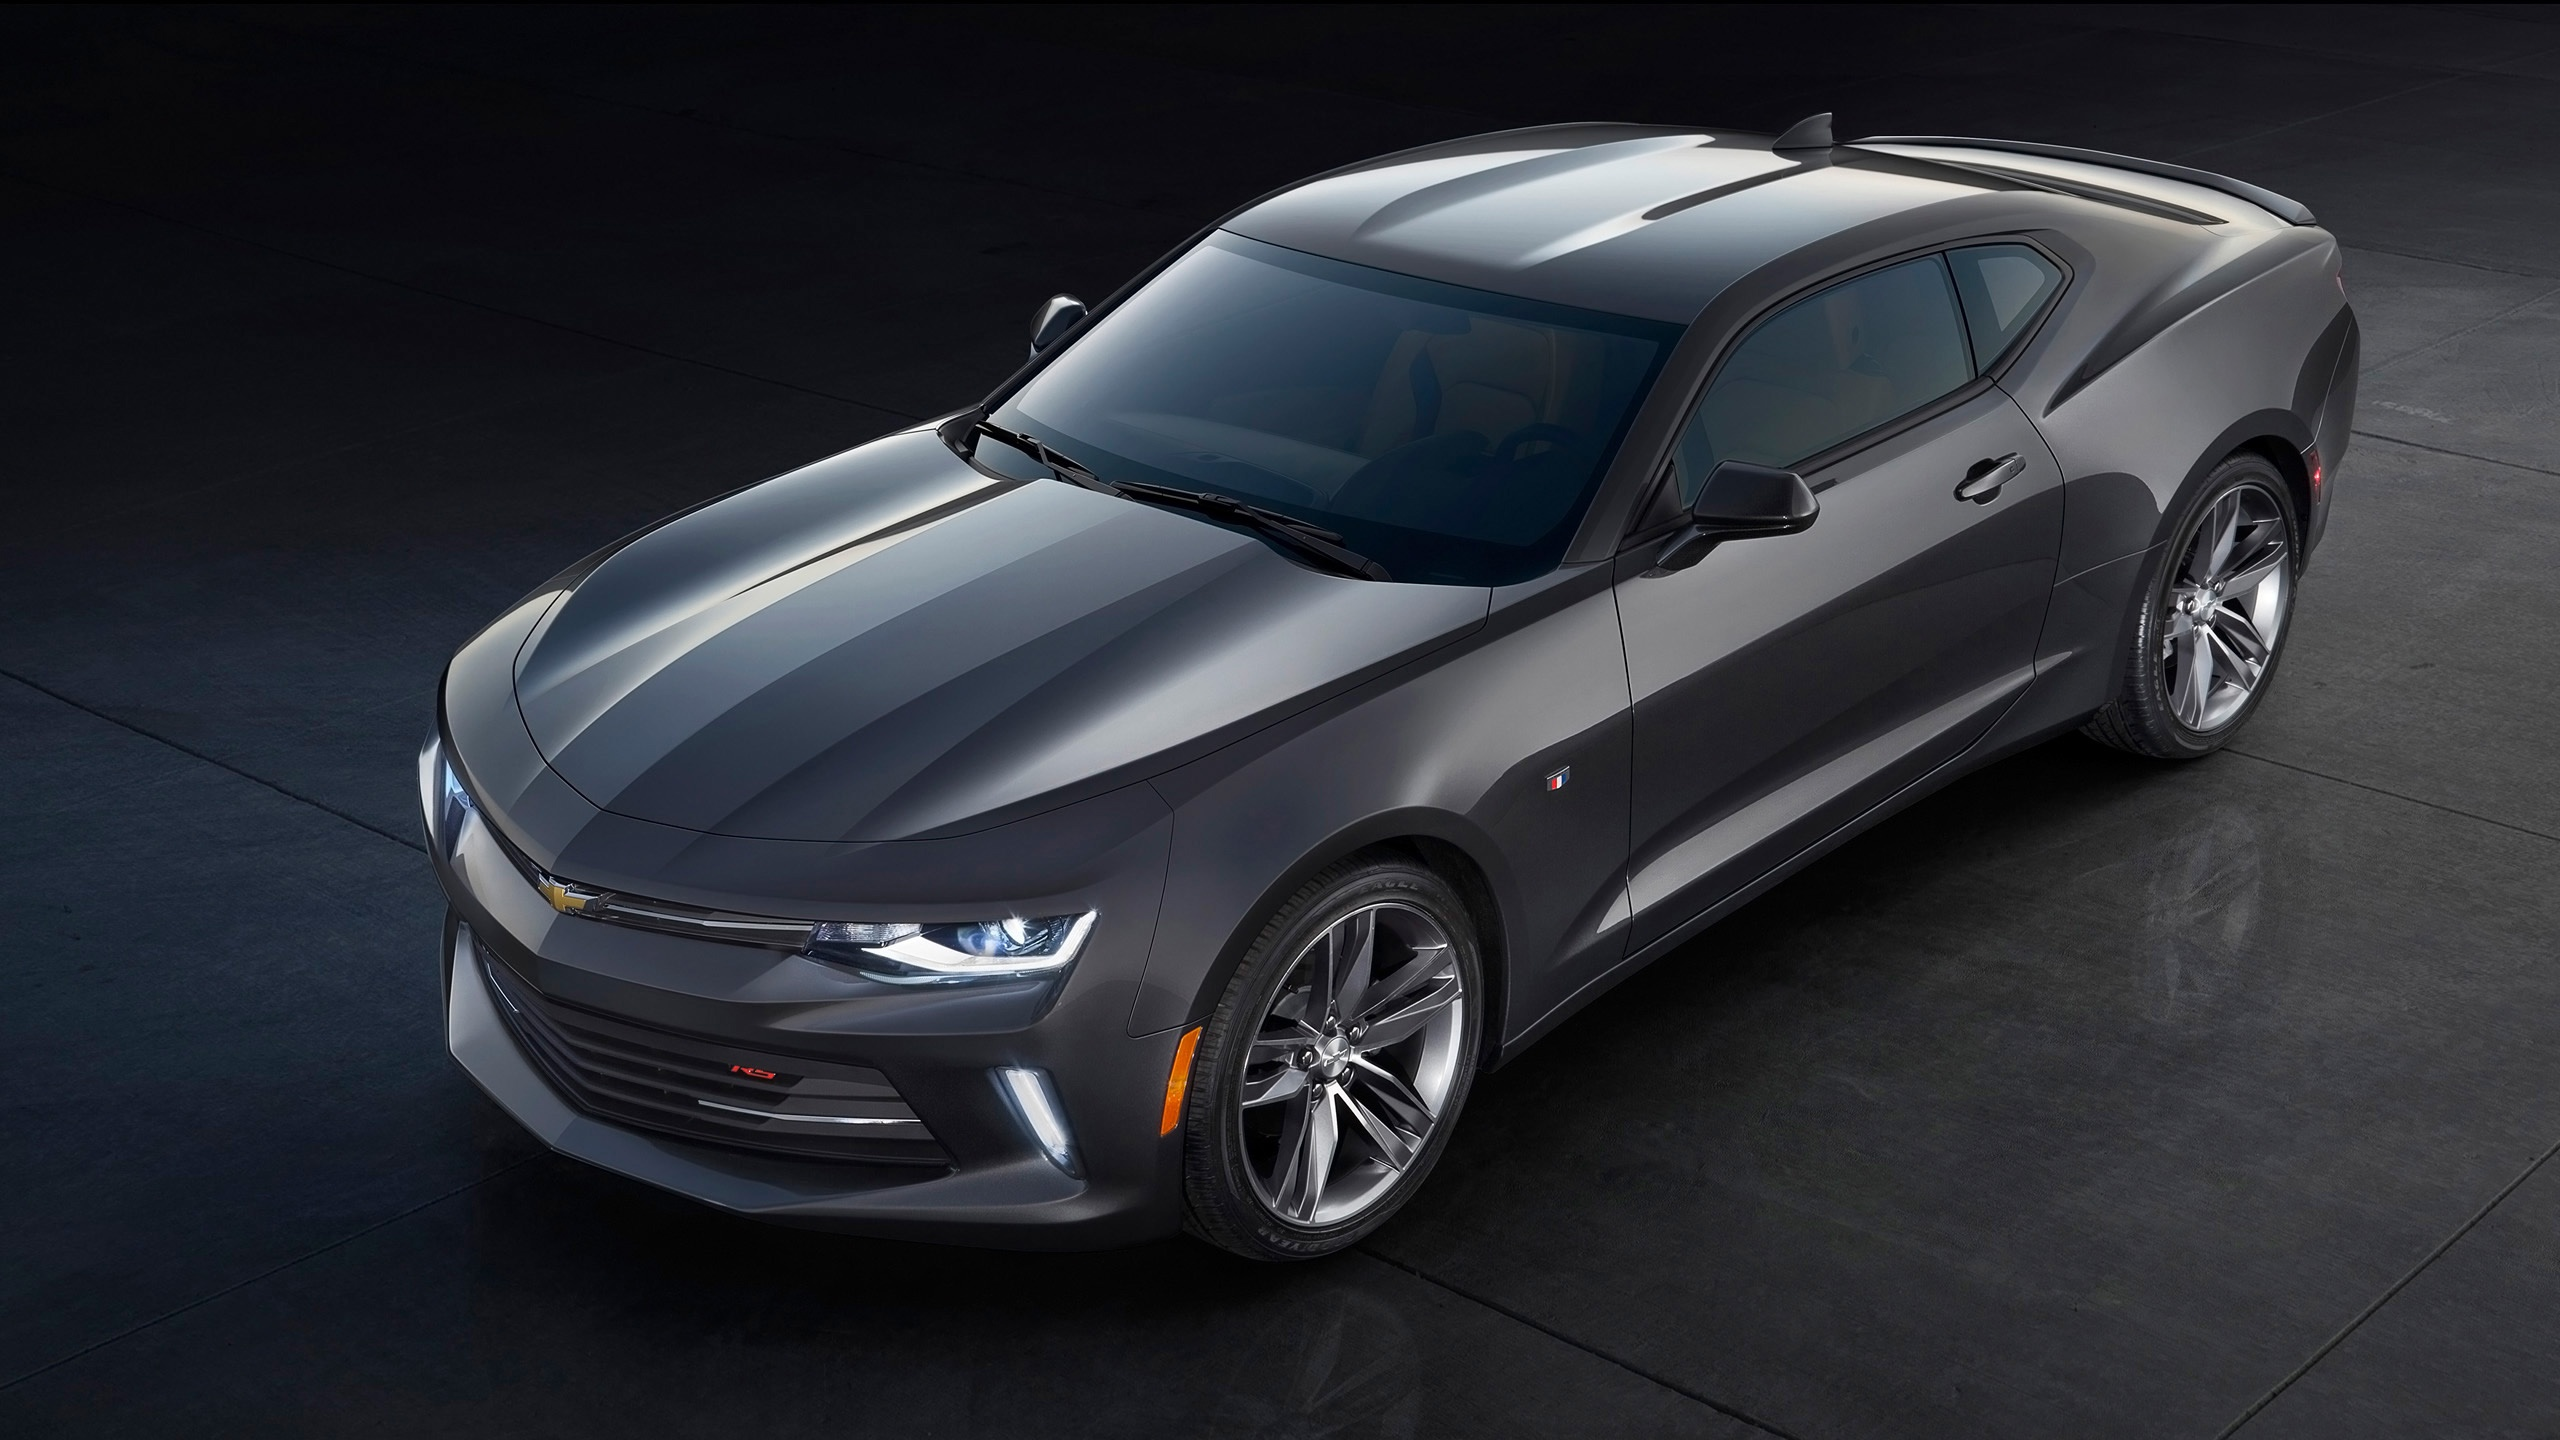 2016 Chevrolet Camaro RS 2 Wallpaper HD Car Wallpapers 2560x1440